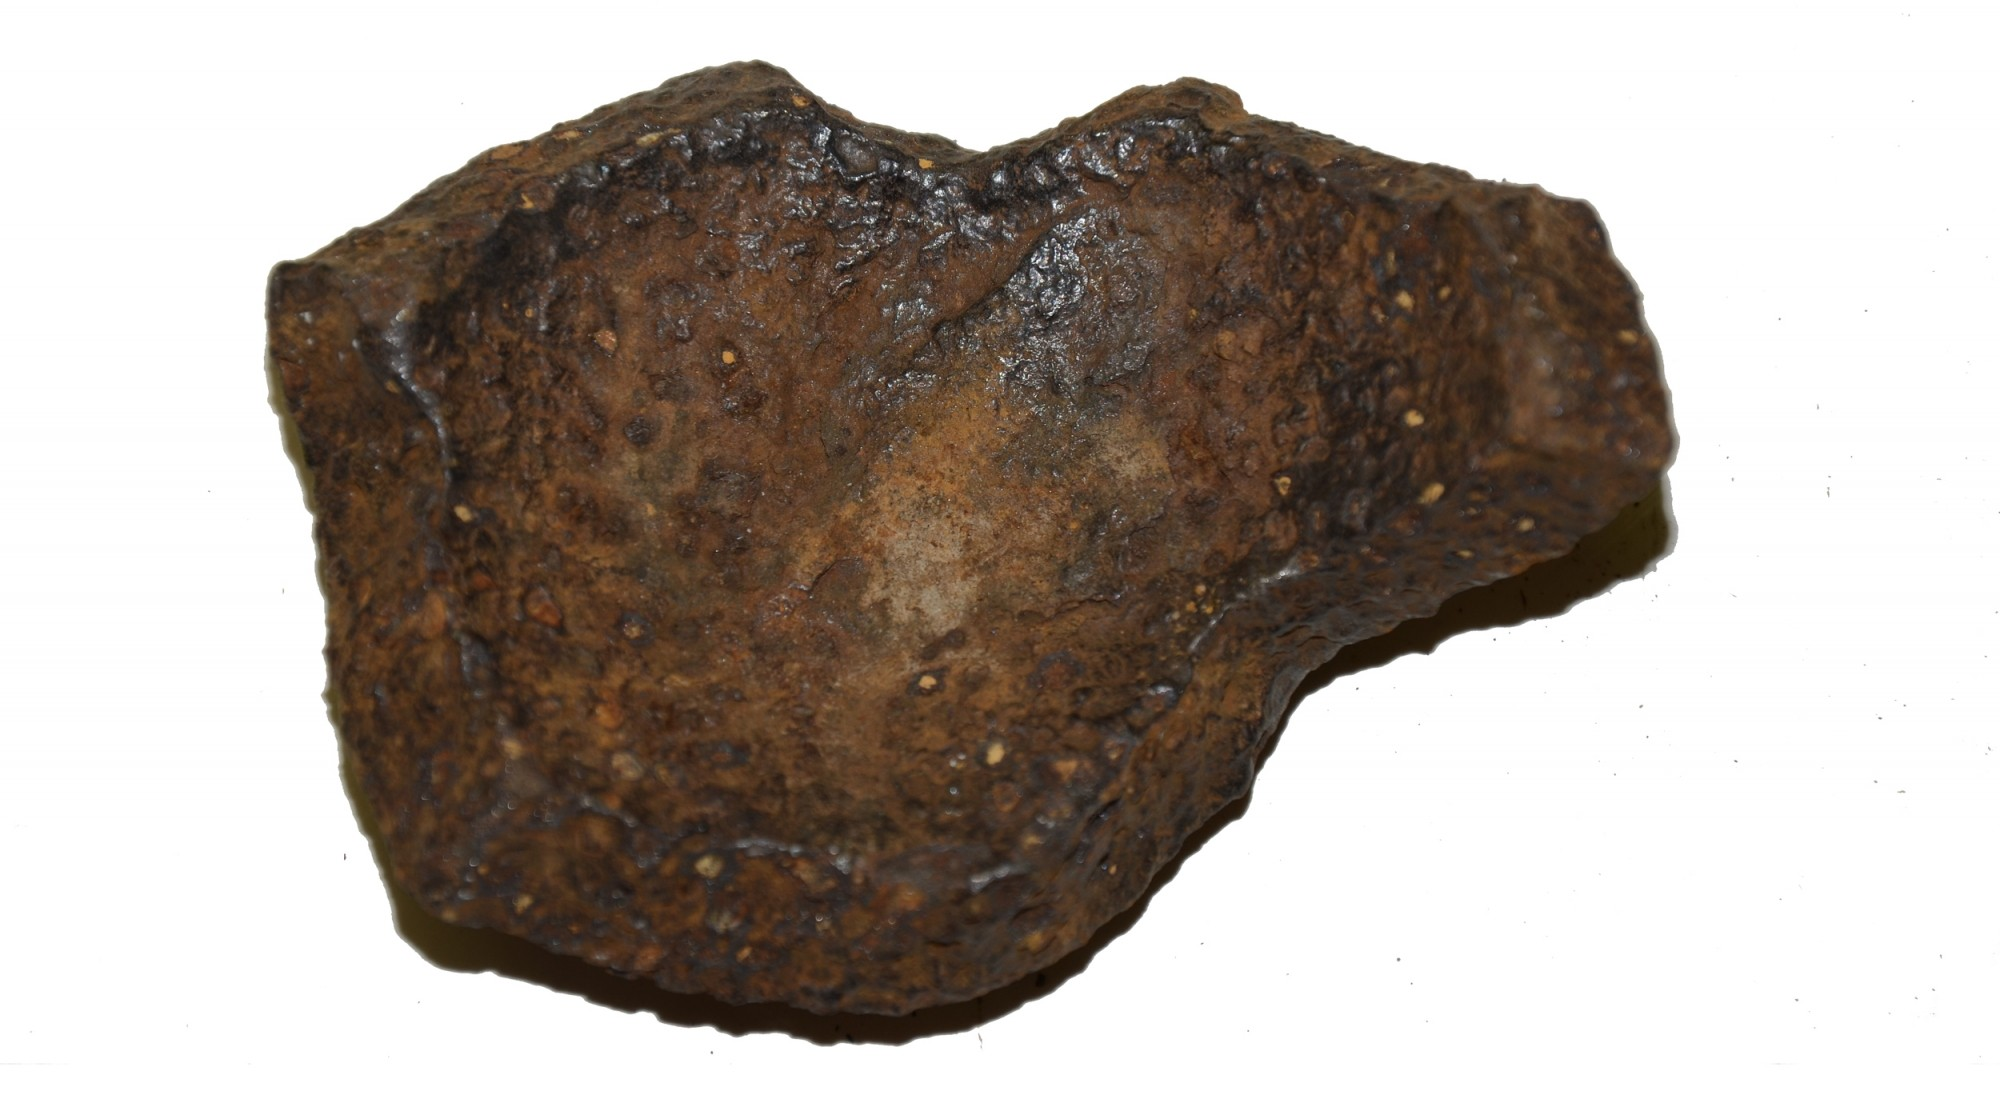 "US/CS 4.52"" 12 LB SPHERICAL SHELL FRAGMENT RECOVERED AT THE TROSTLE FARM, GETTYSBURG"